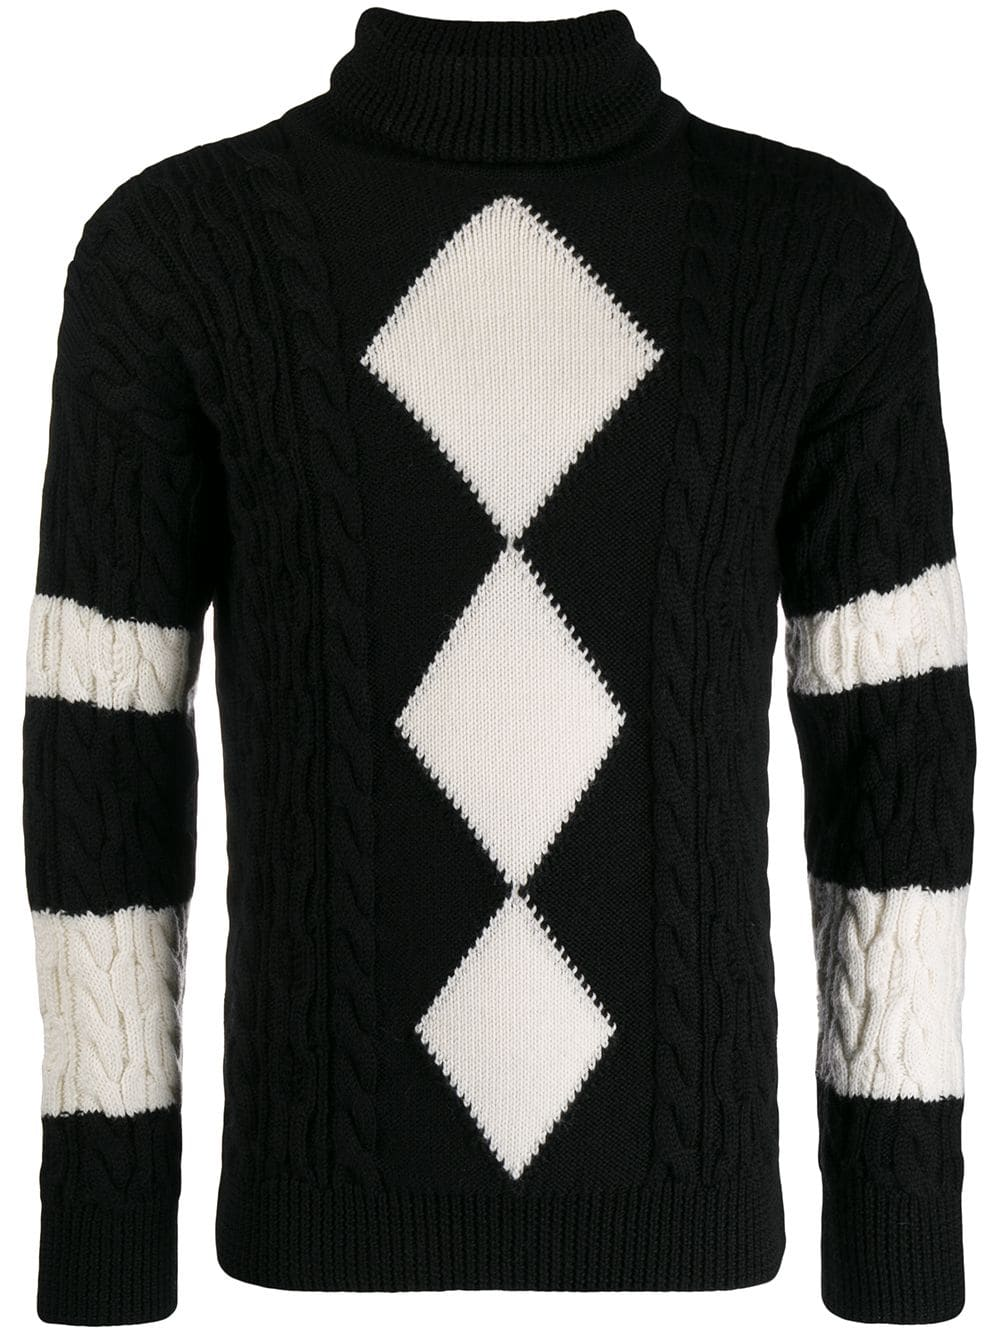 Ski Into Style…Stylish Looks for Winter Vacation Destinations, apres ski men's outfit, Saint Laurent turtle neck argyle sweater black and white